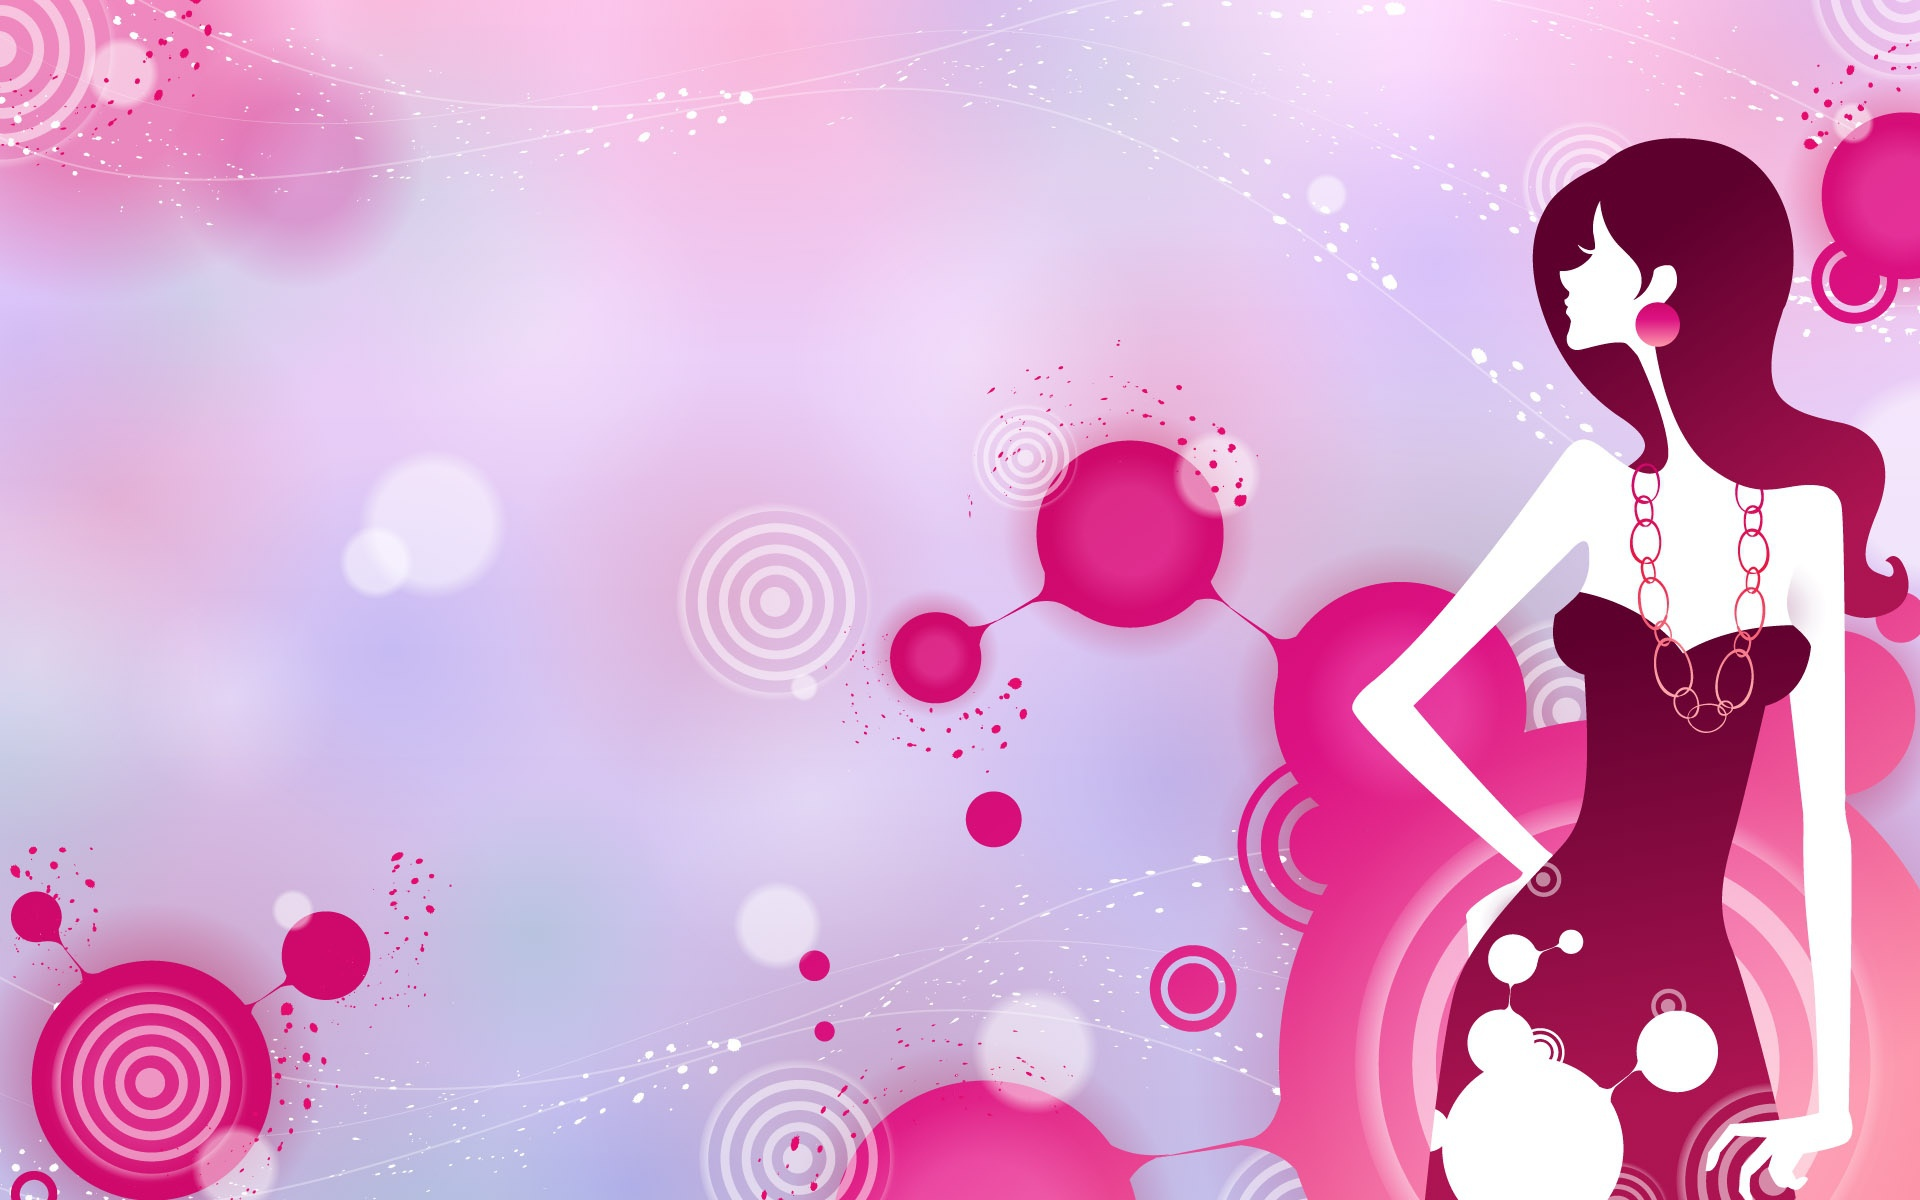 Wallpapers For Girls 3179